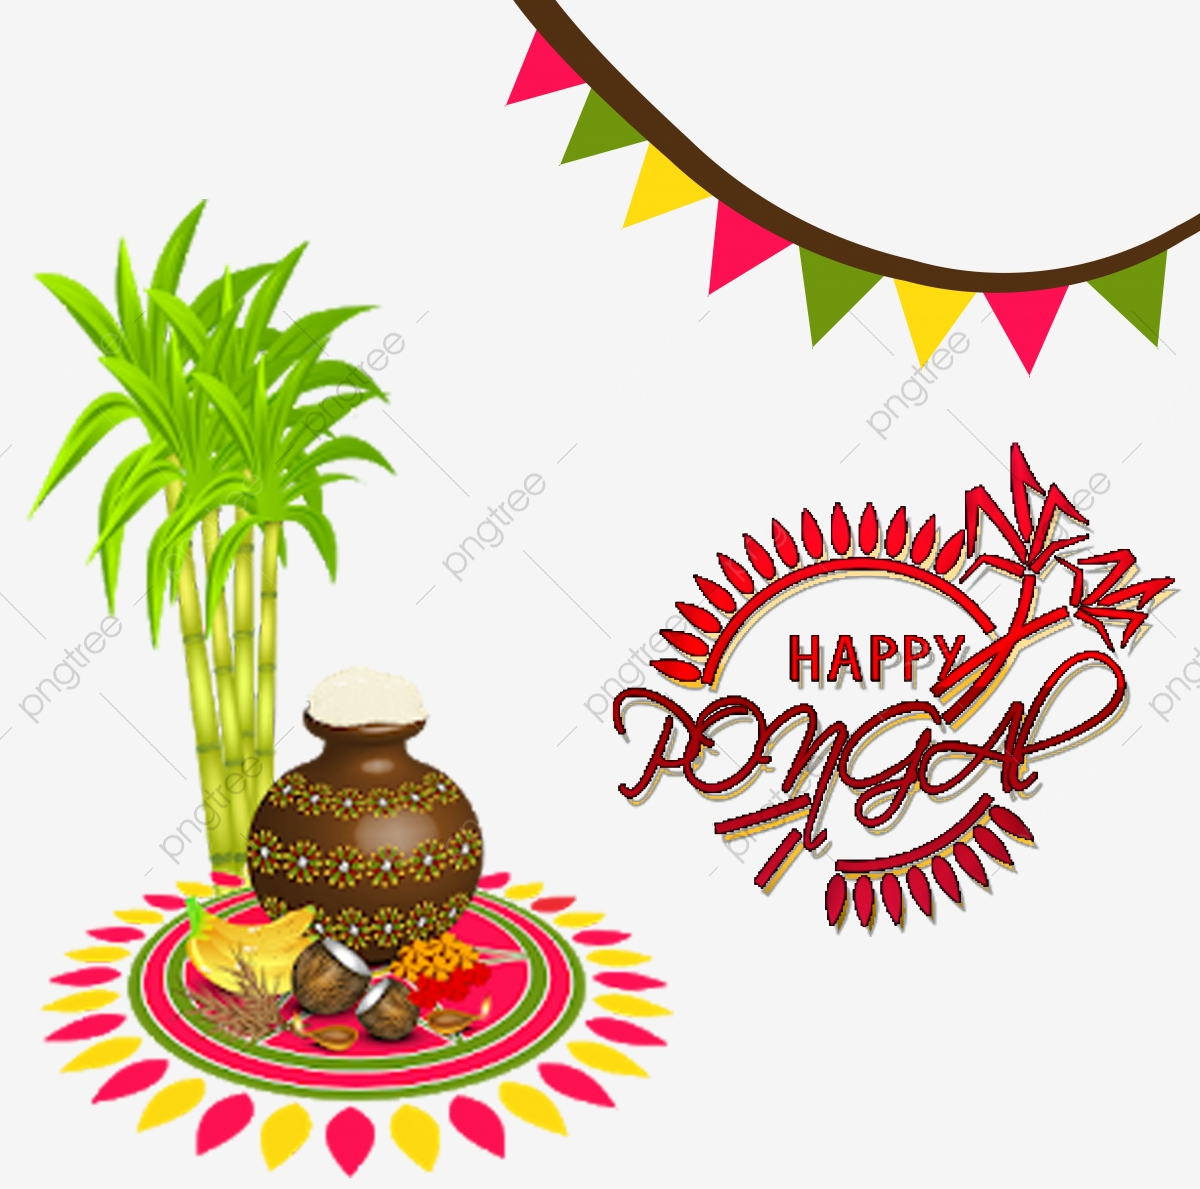 Happy Pongal Vector, Background Pongal, Wishes, Sankranti.